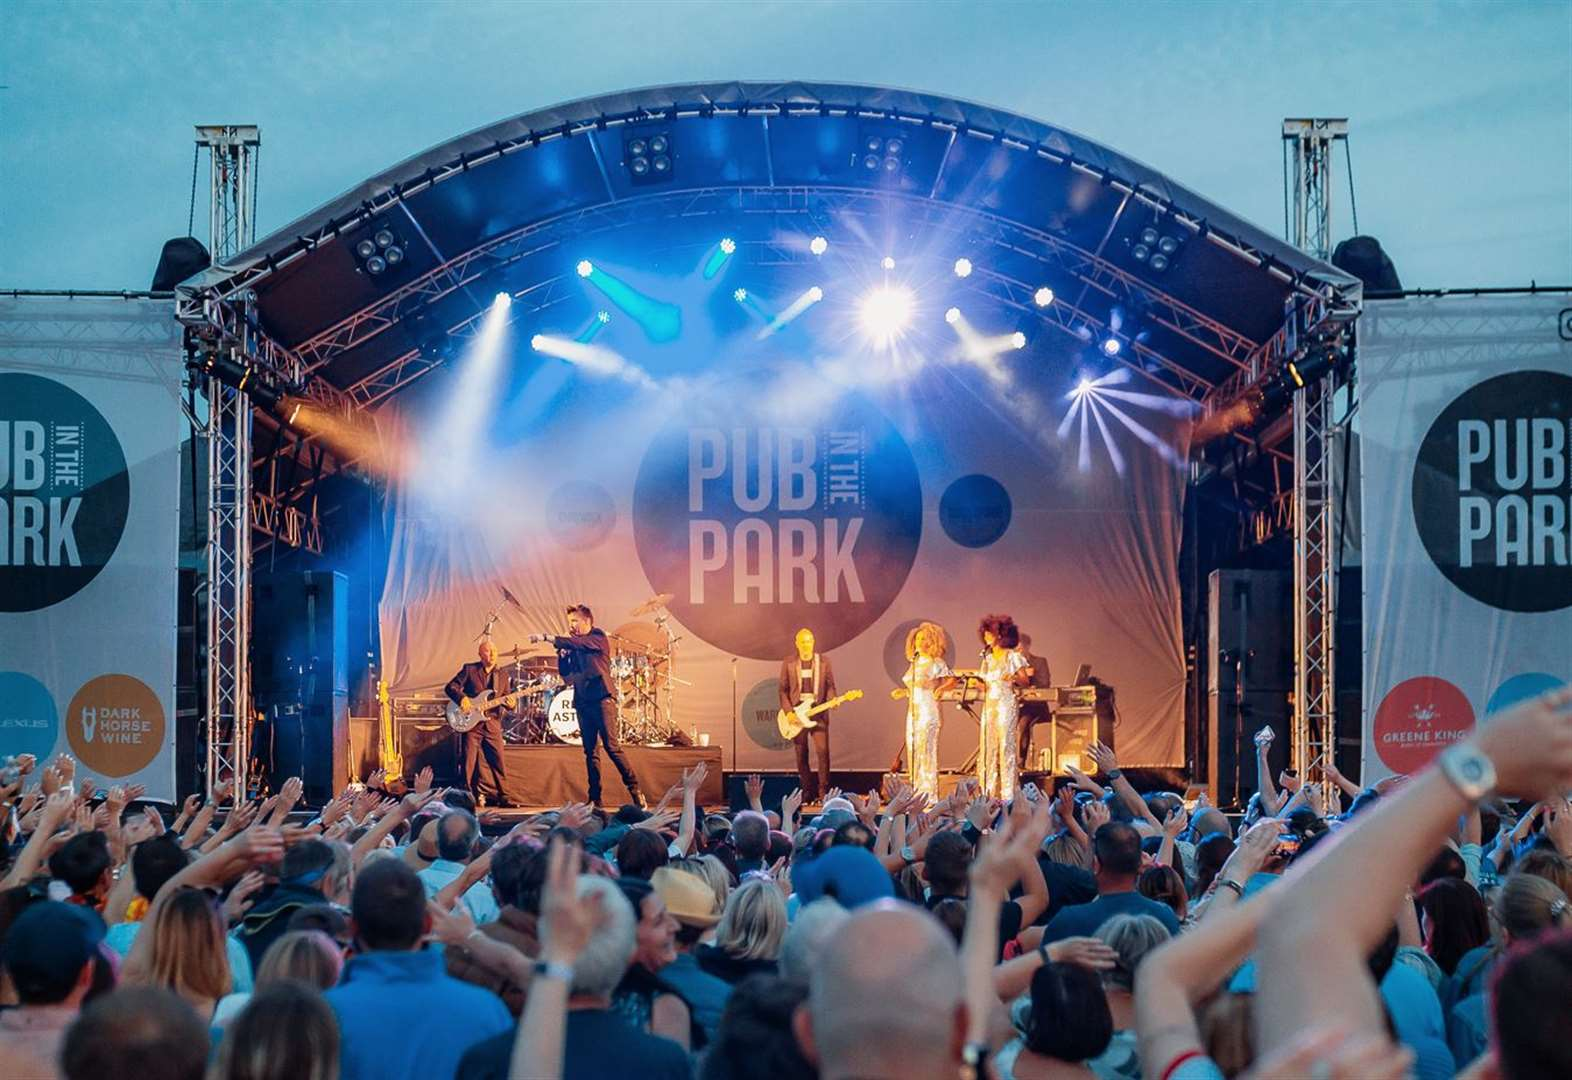 Pub in the Park set to return